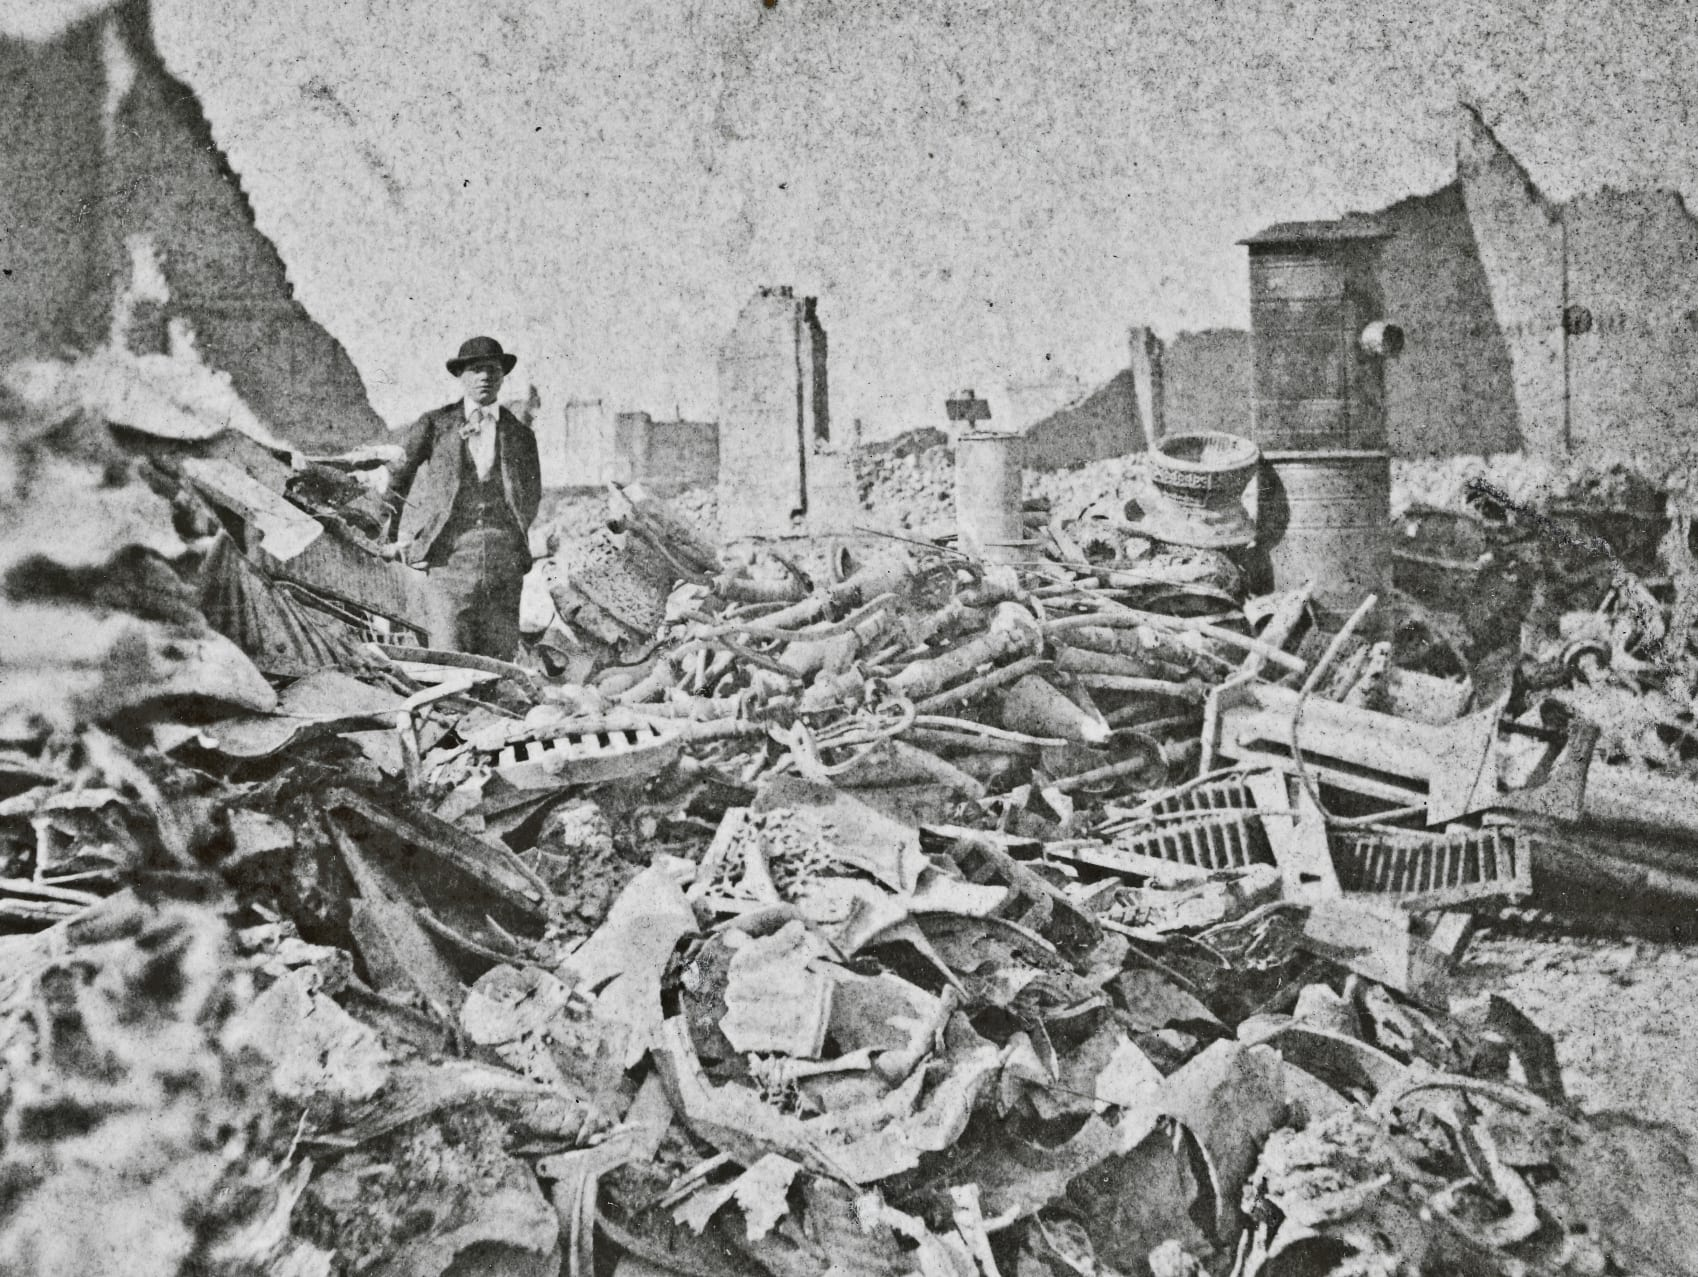 the events of the great chicago fire Great chicago fire of 1871 for kids ulysses grant was the 18th american president who served in office from march 4, 1869 to march 4, 1877 one of the disastrous events during his presidency was the great chicago fire of 1871.